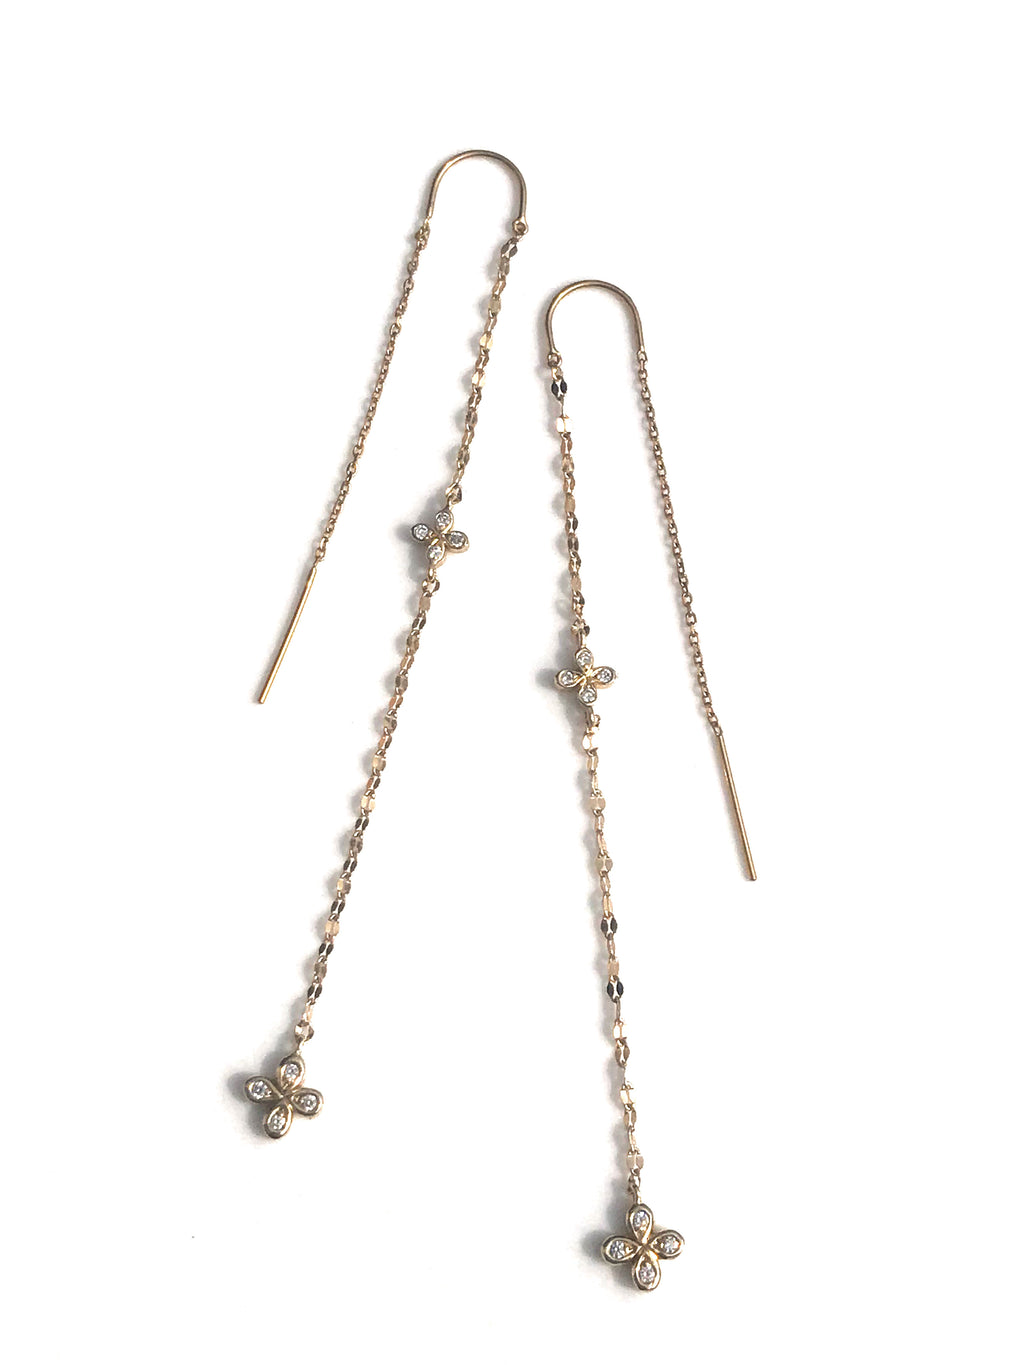 Diamond Threader Earrings - IN STOCK